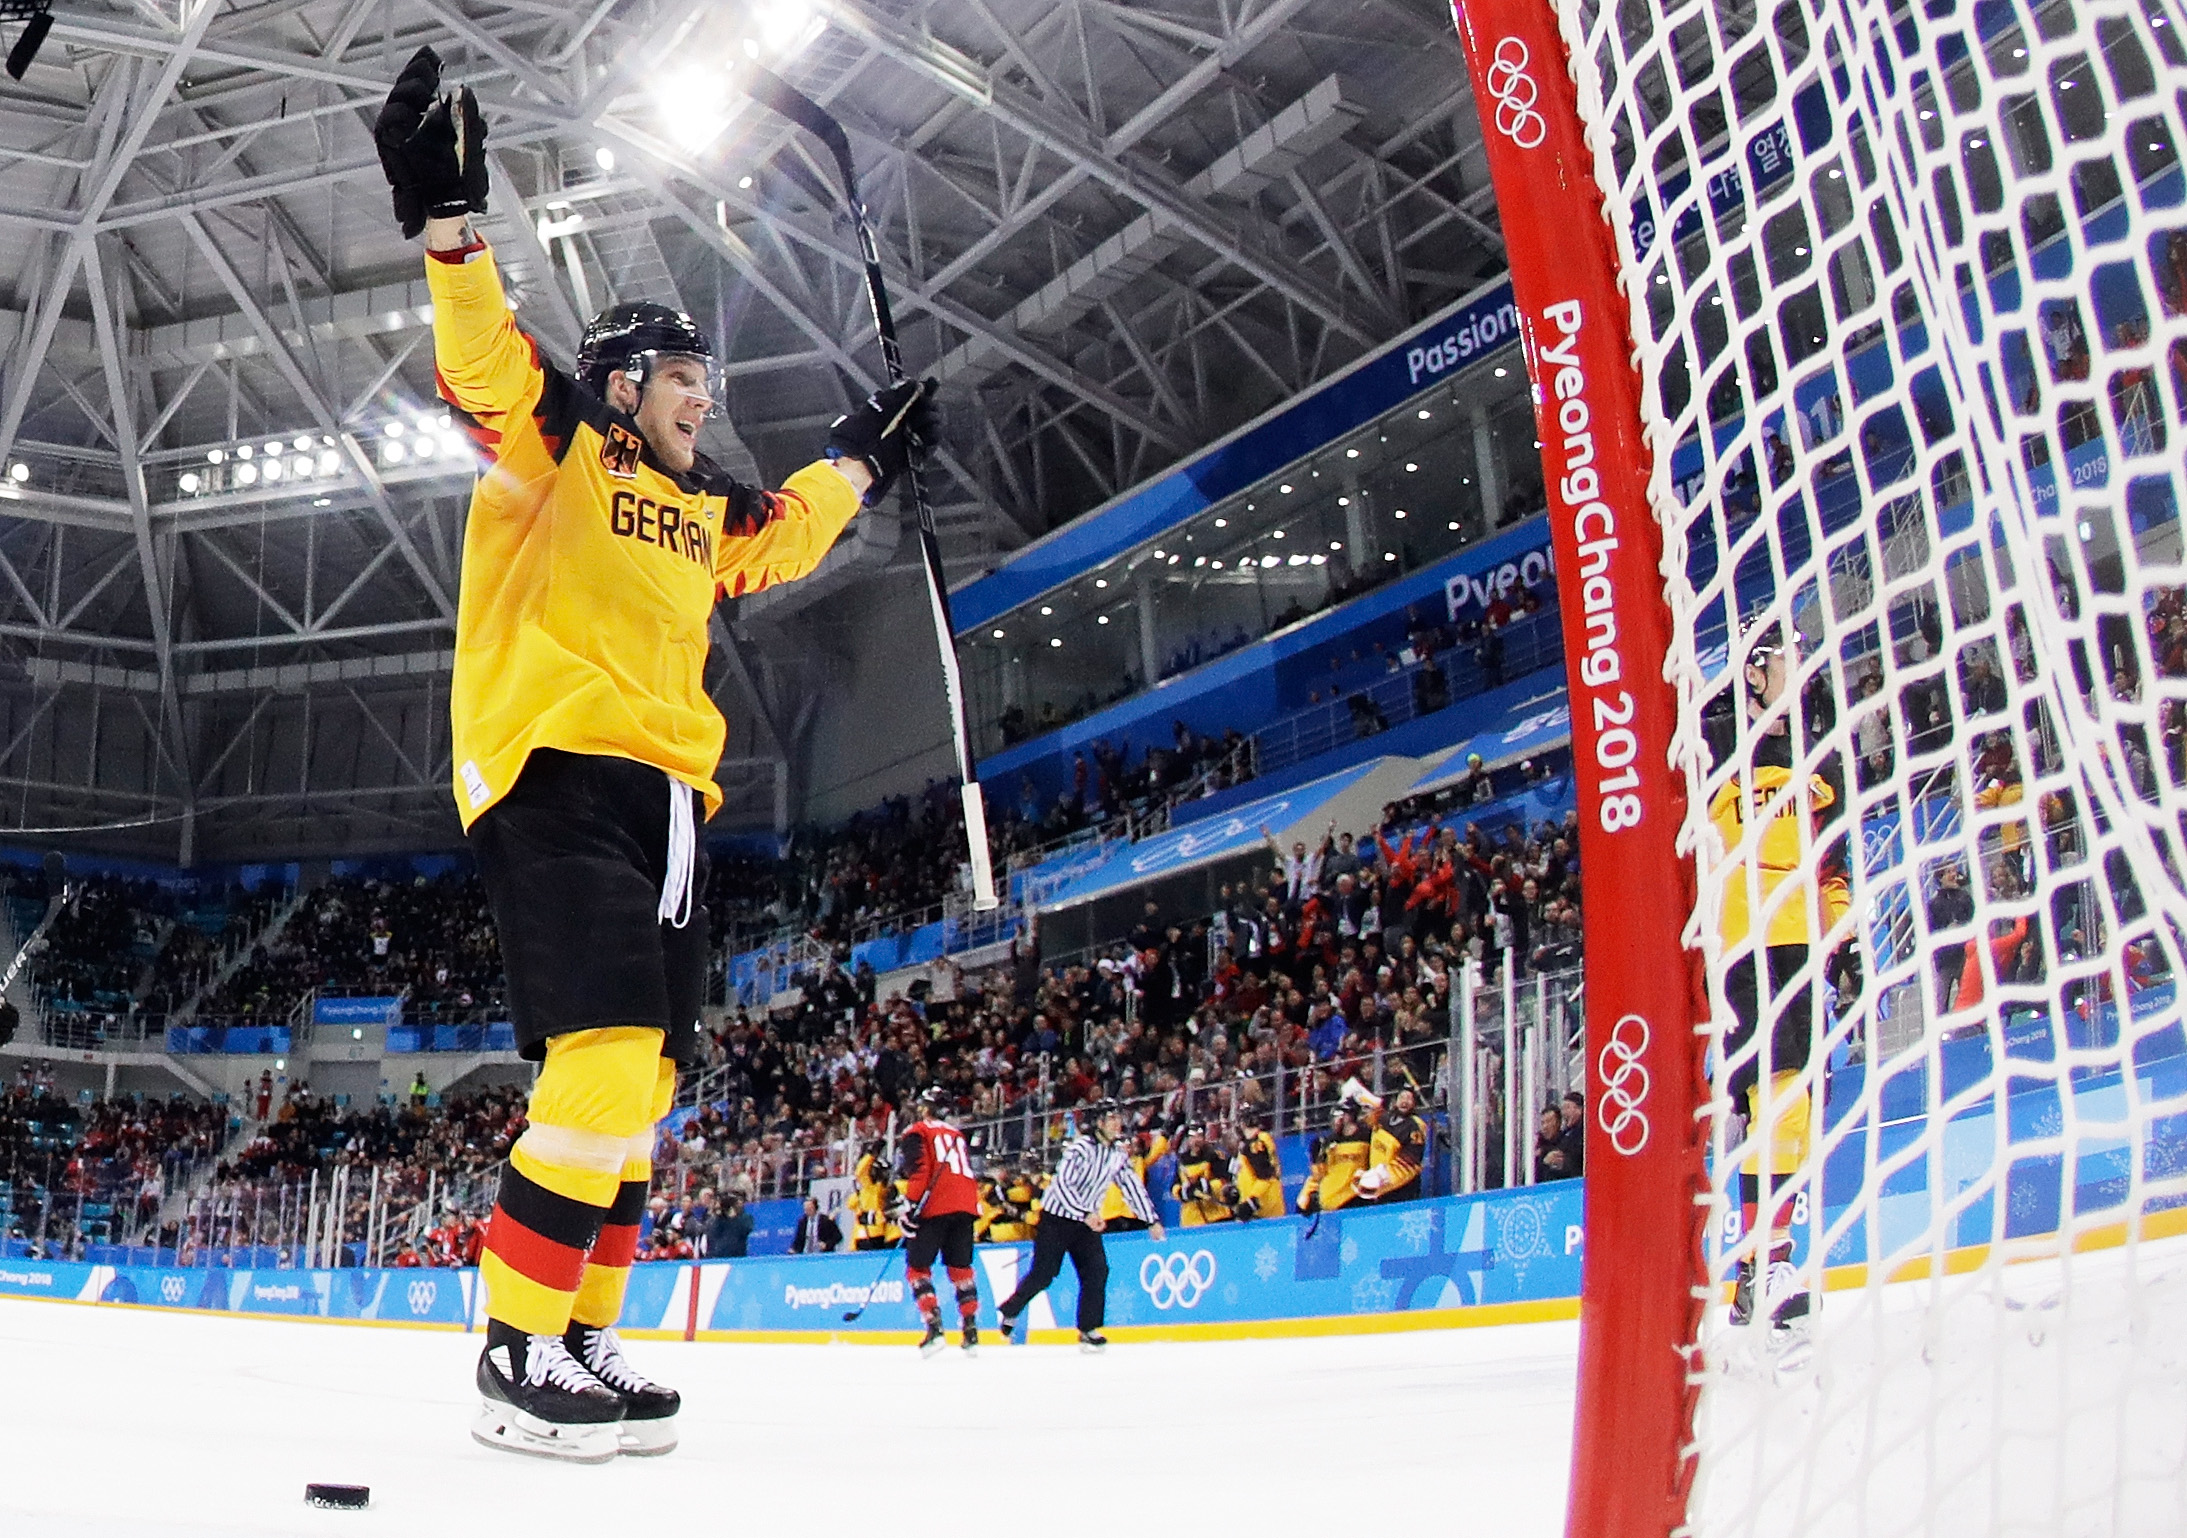 Pyeongchang: 5 Amazing Facts About Germany's Gold Medal Game Run